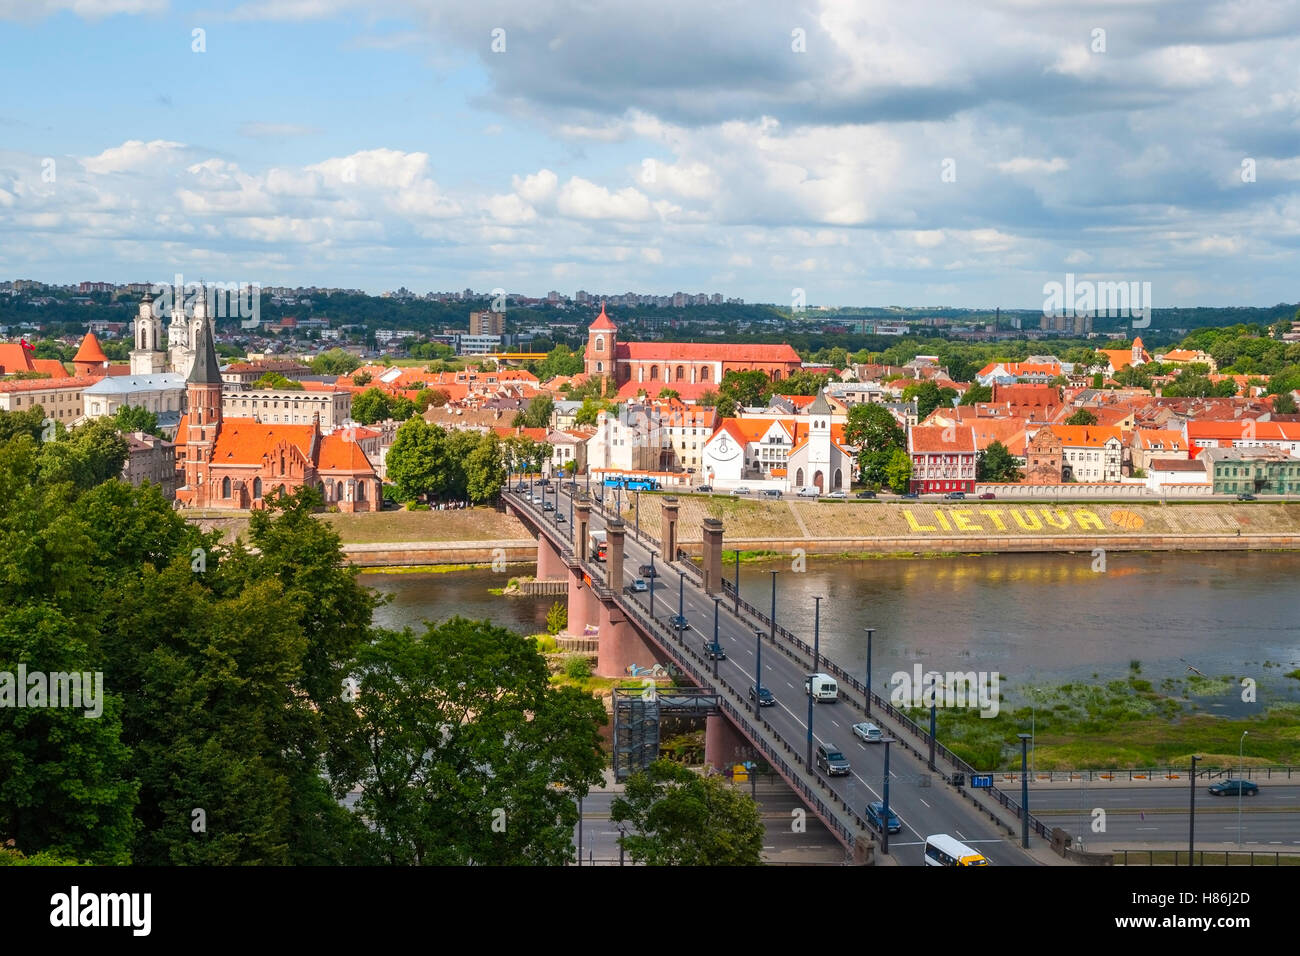 Skyline of Kaunas city with river and bridge, Lithuania - Stock Image